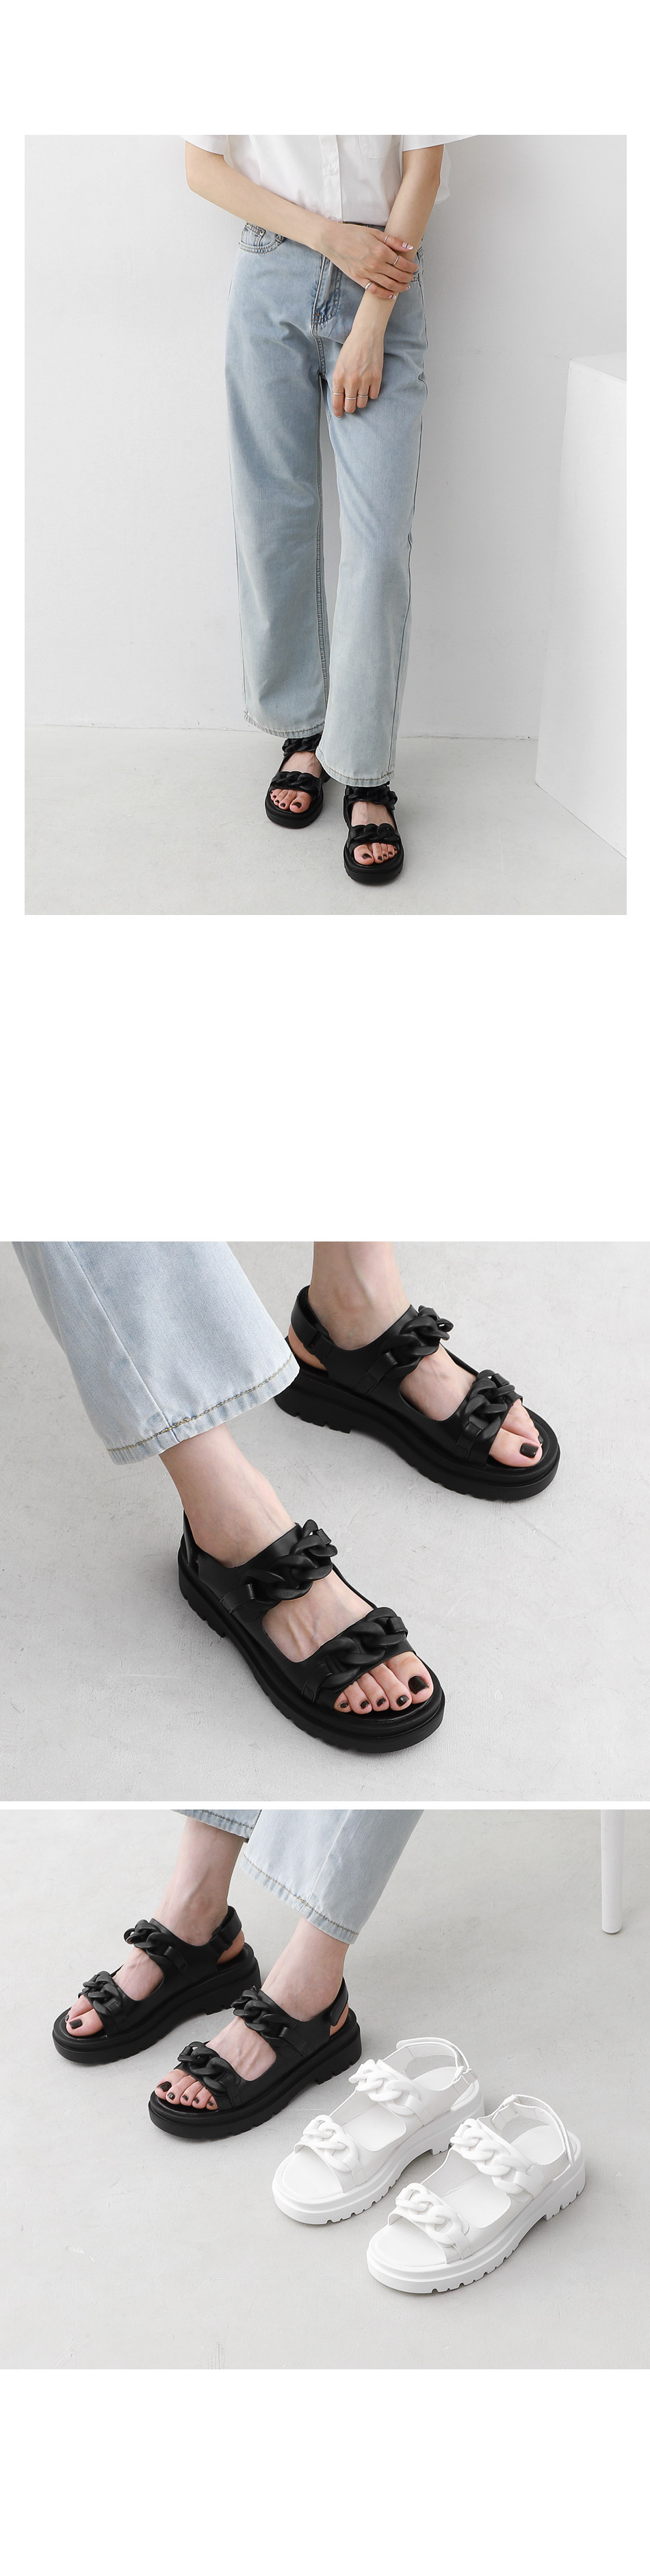 Isshu Big Chain Decoration Two Straps Whole Heel Sandals 10966 ♡First Sold Out♡